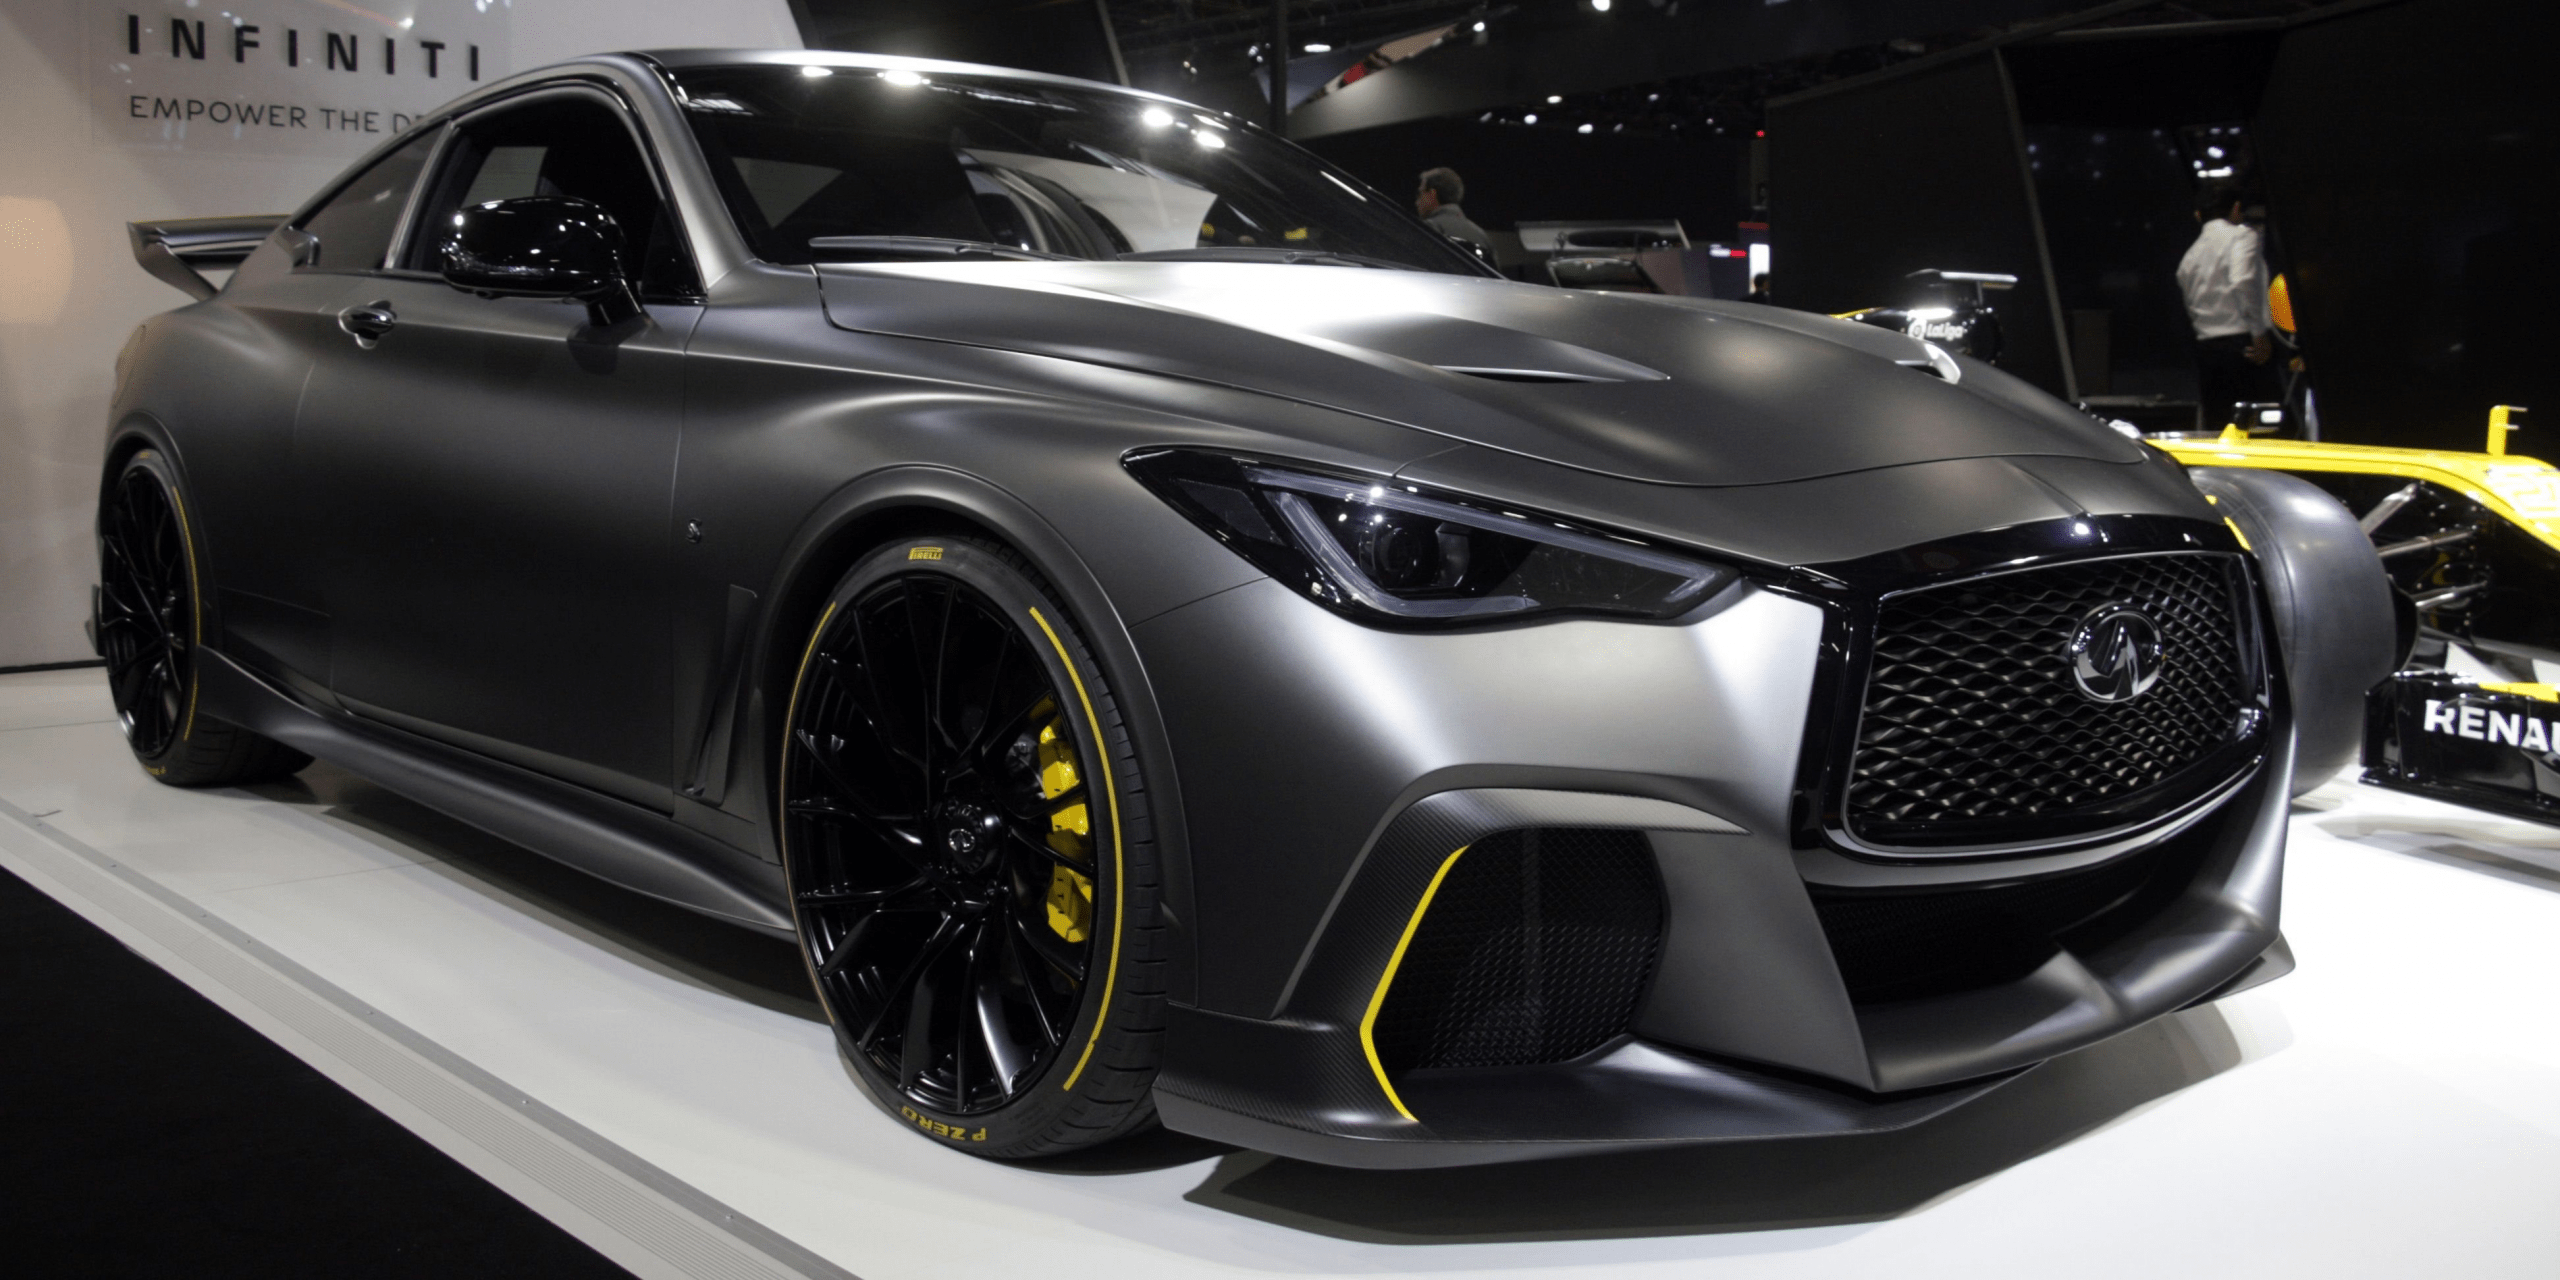 2020 Infiniti Q60 Coupe Convertible Price In 2020 Top Sports Cars Super Sport Cars Infiniti